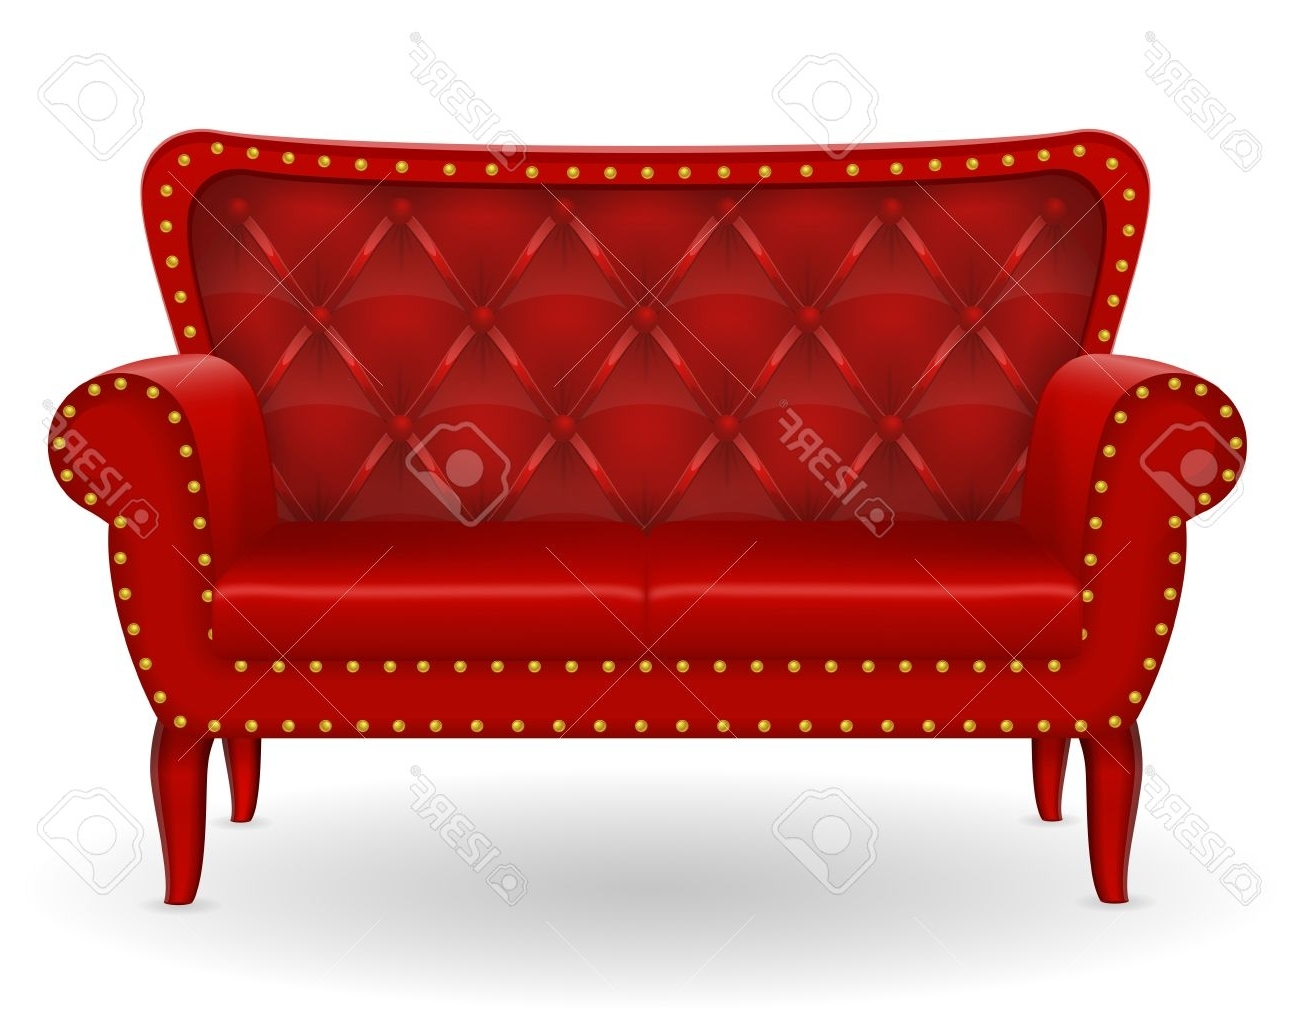 2017 Red Sofa Furniture Vector Illustration Isolated On White Pertaining To Red Sofa Chairs (View 14 of 15)